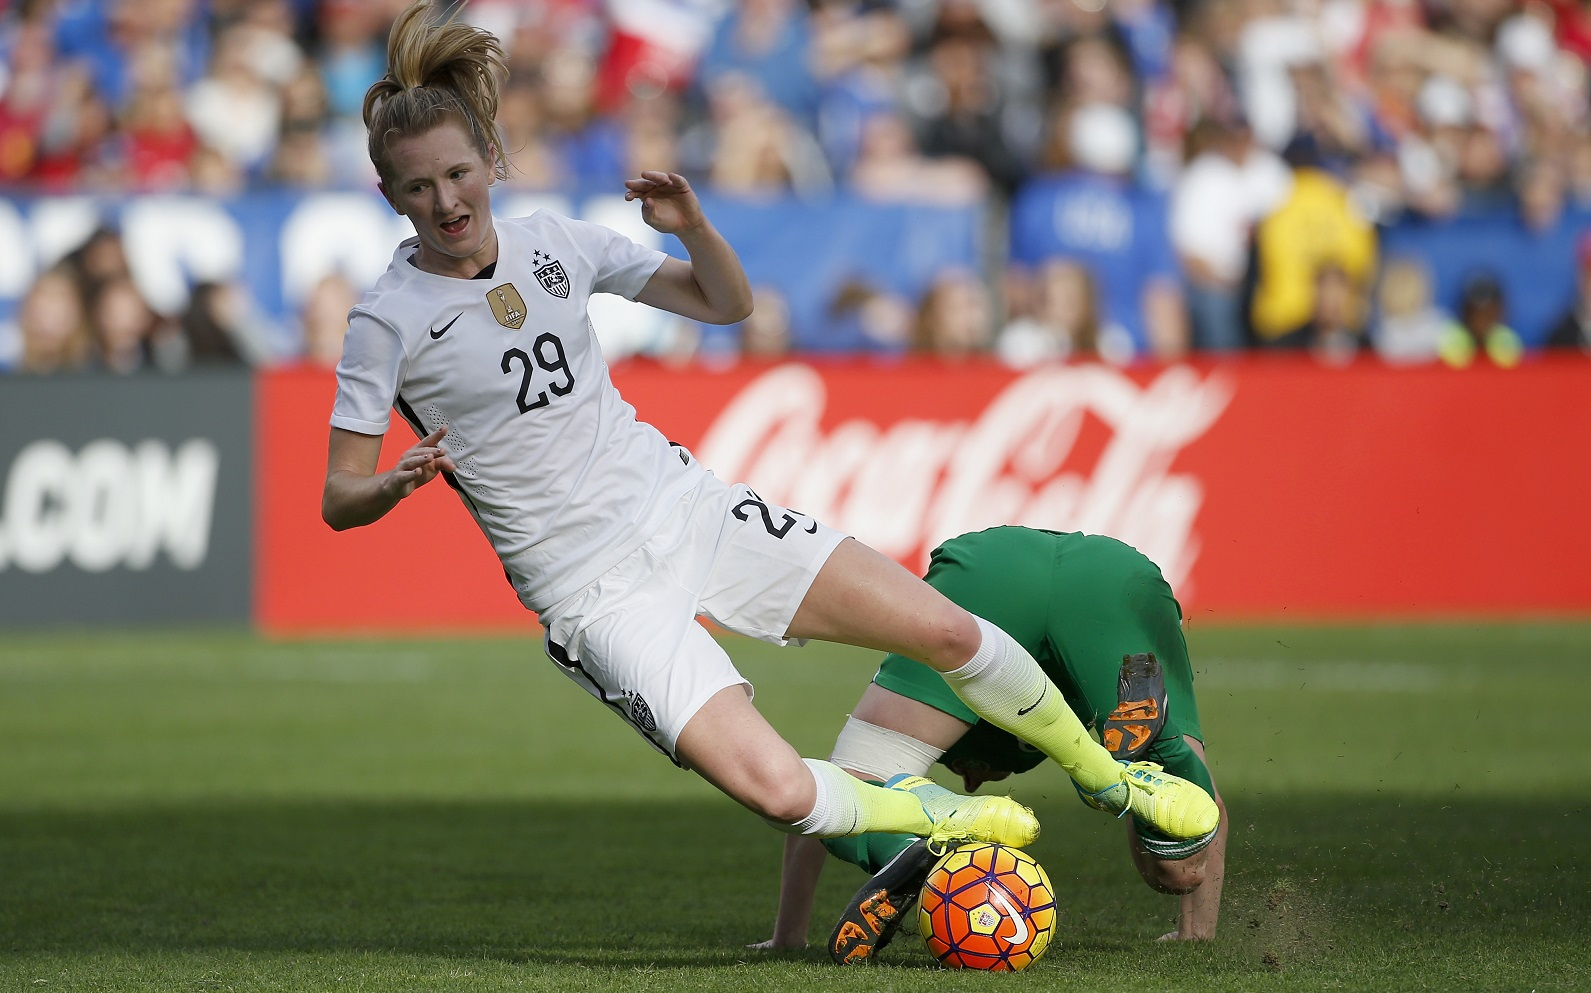 Samantha Mewis, No. 29 in white, will lead the charge for the WNY Flash in 2016. (Getty Images)